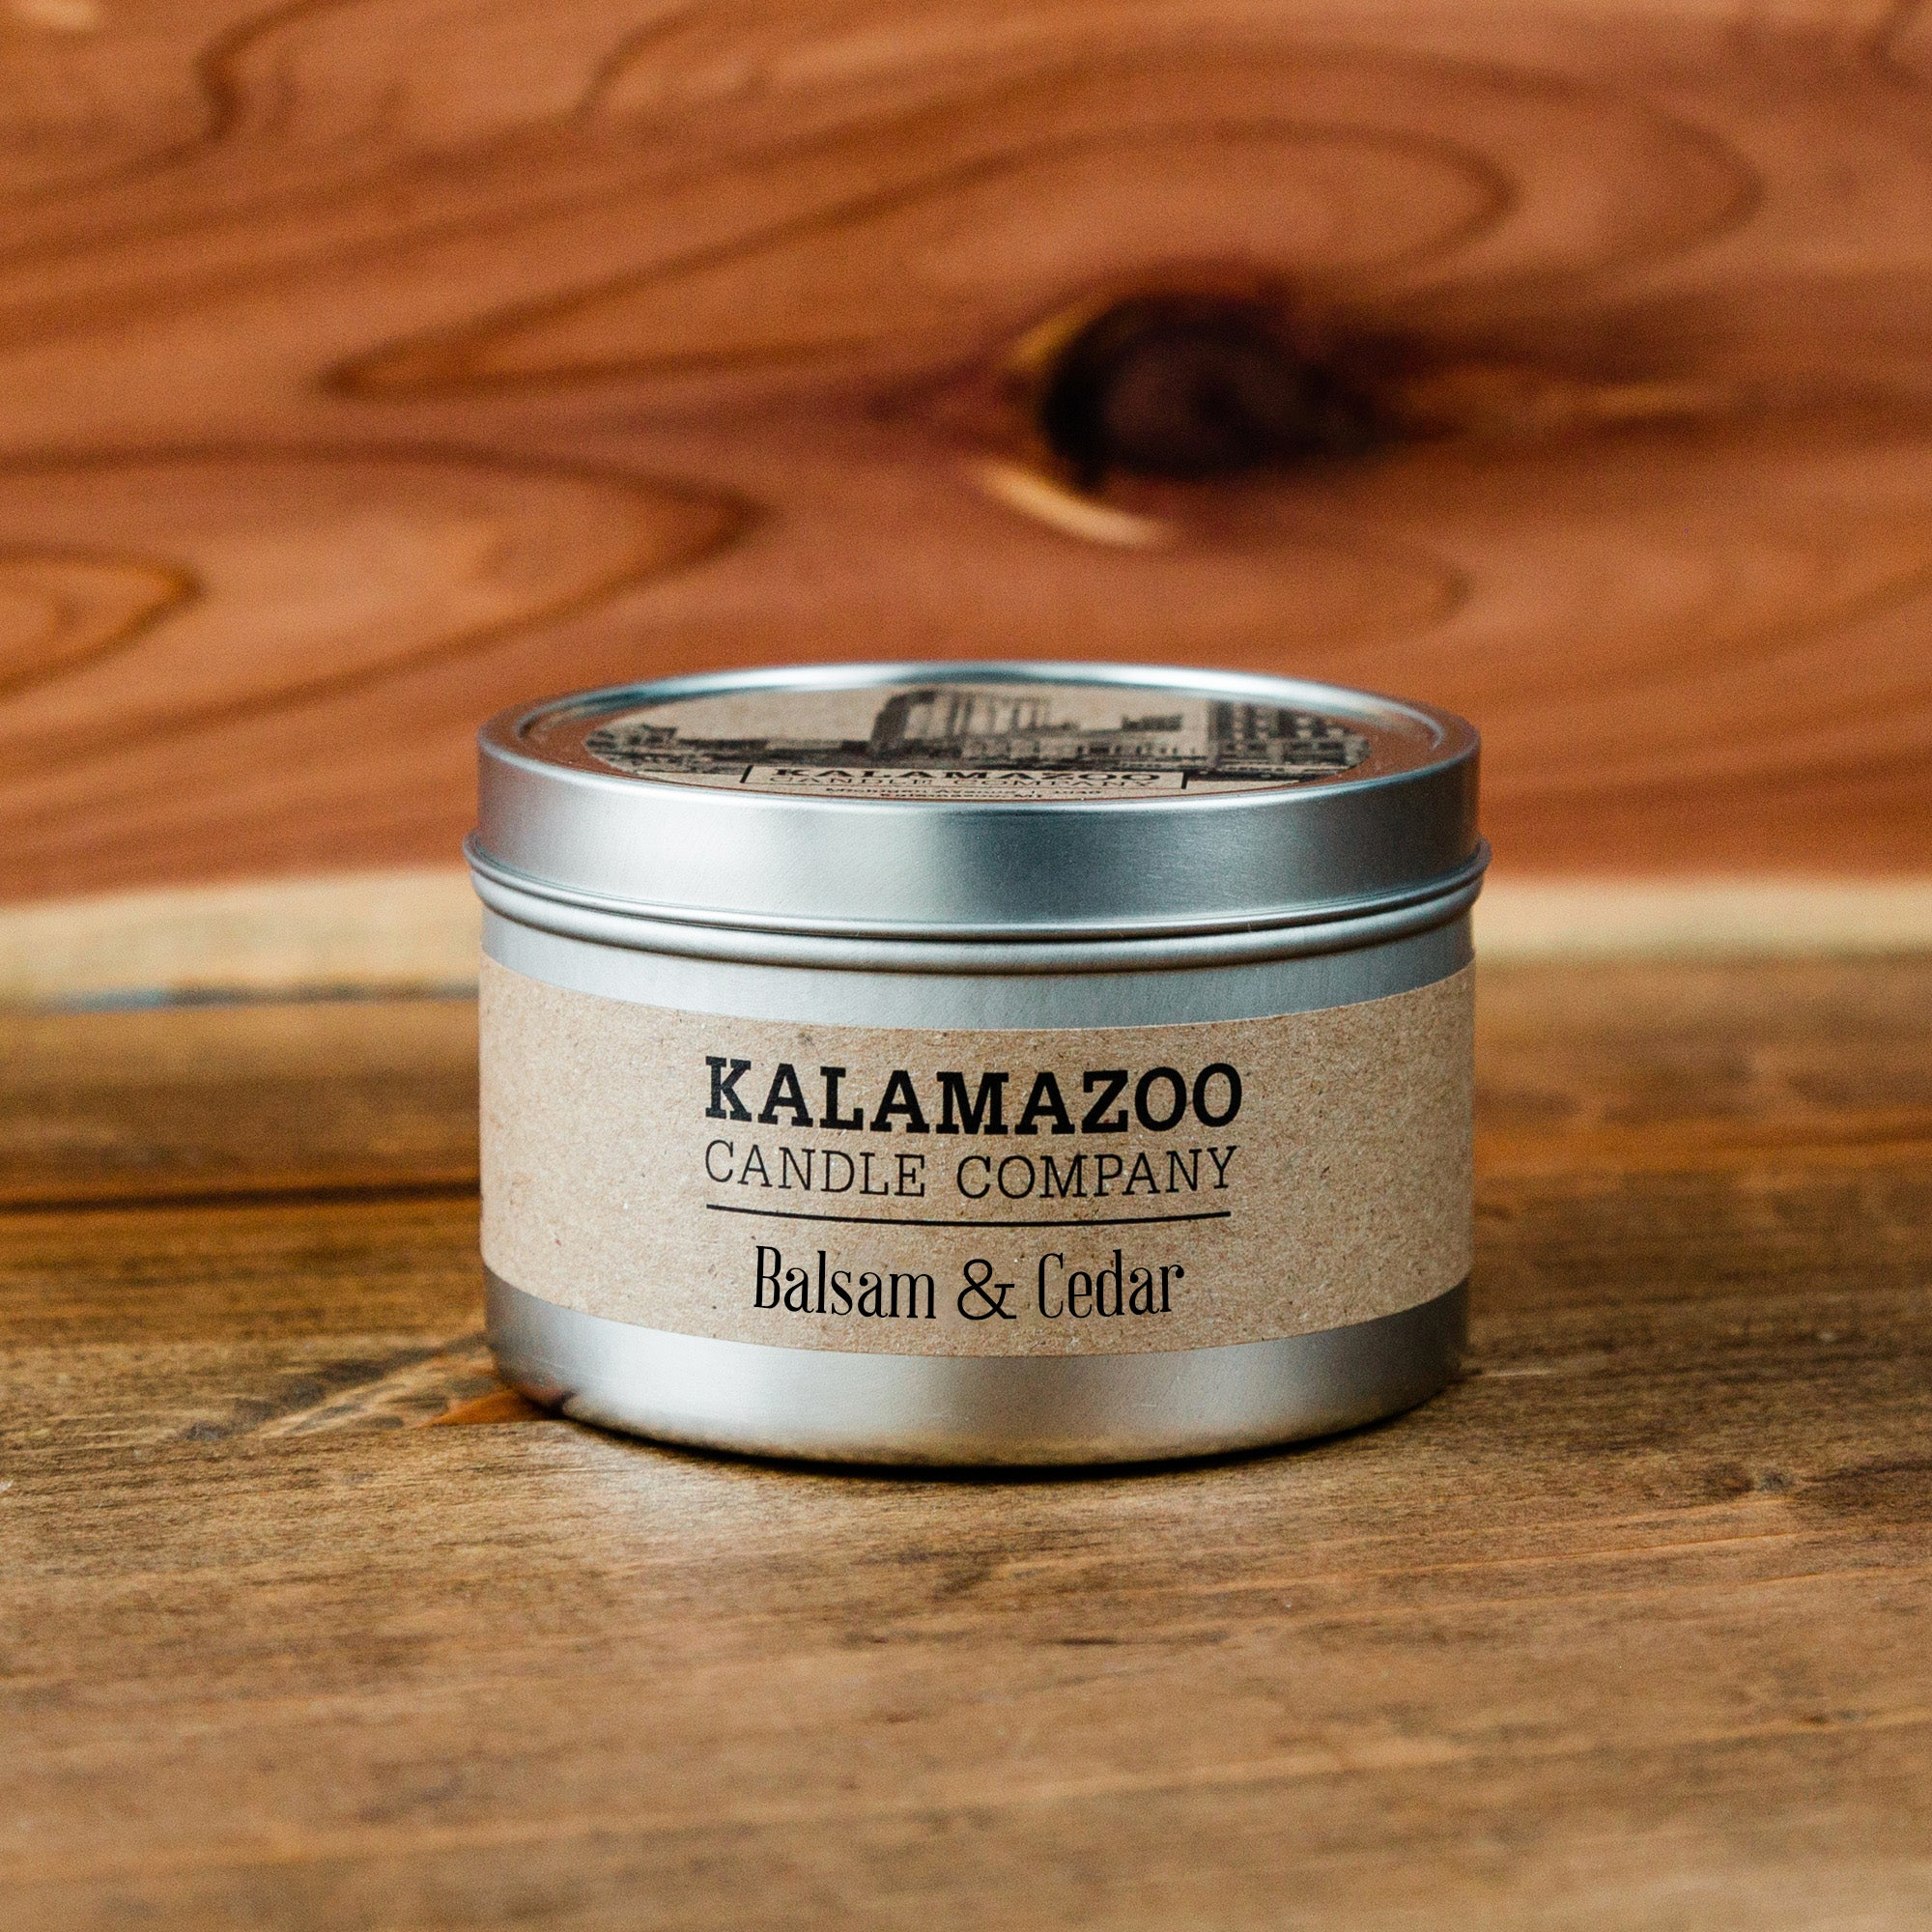 Balsam & Cedar Candle: 6oz Tin